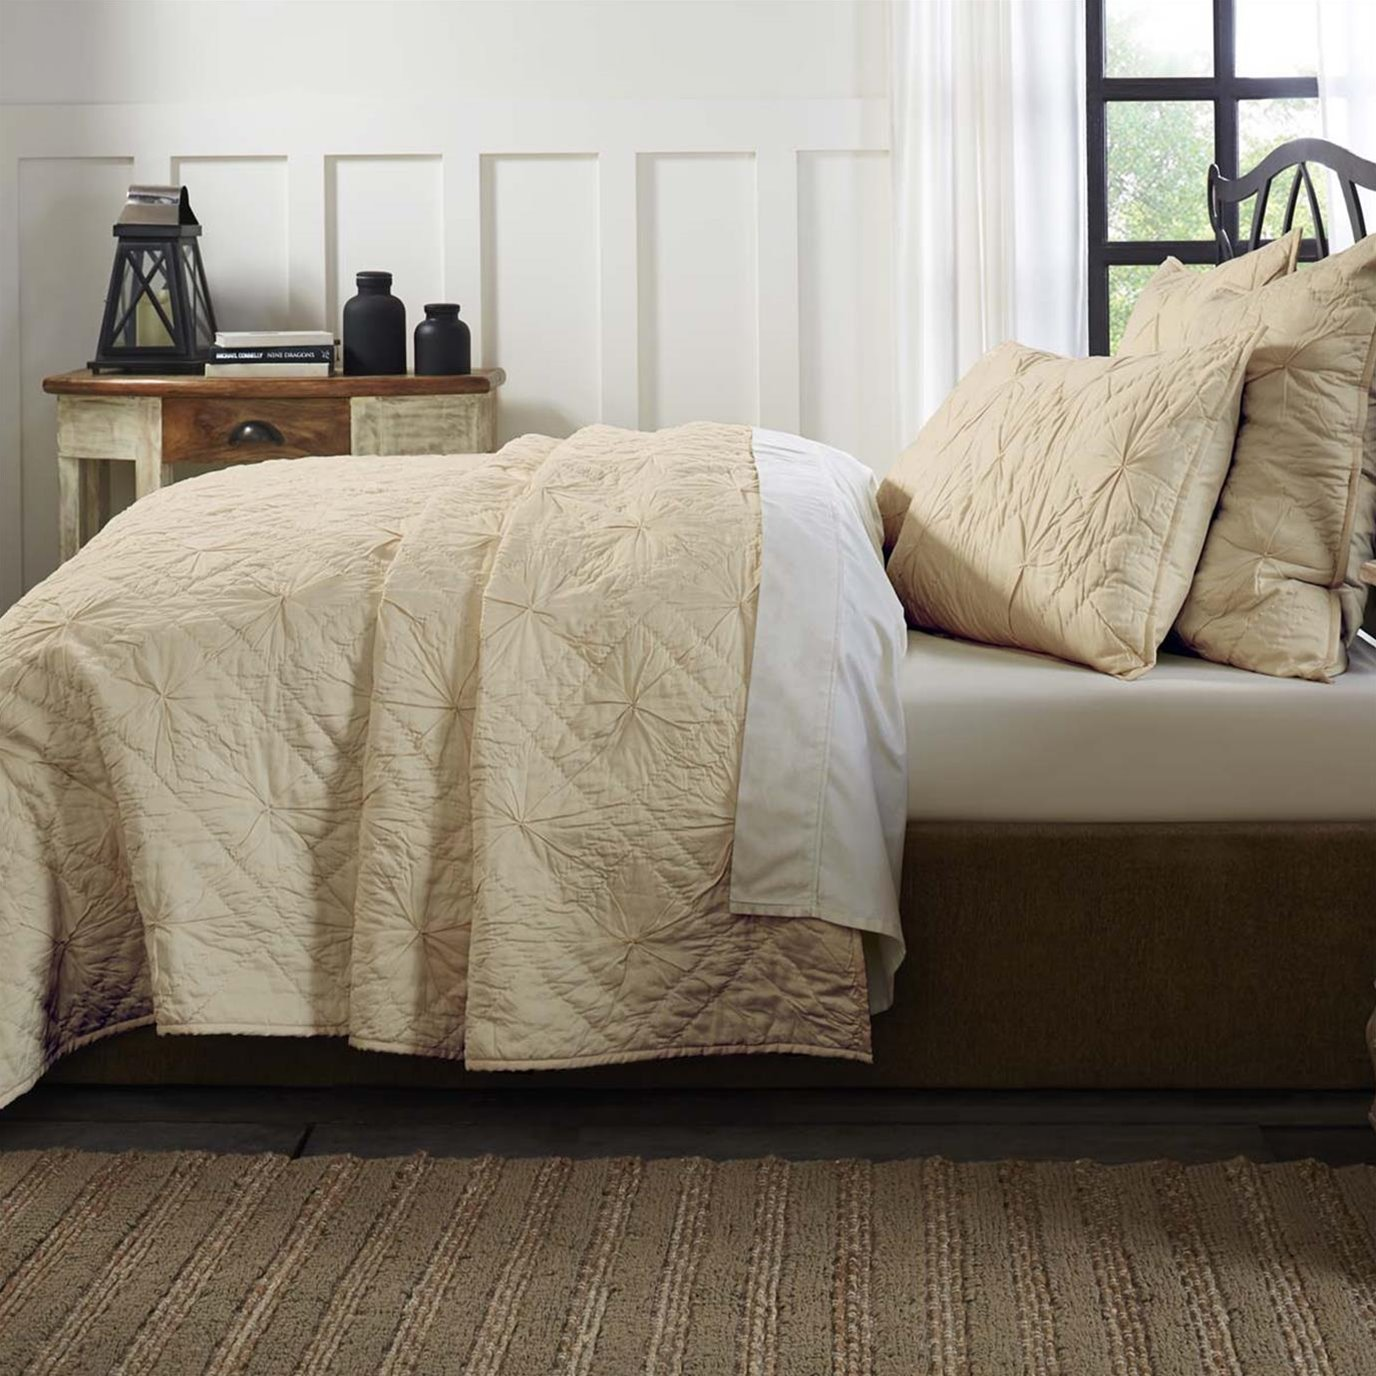 Aubree Taupe King Quilt 108Wx92L